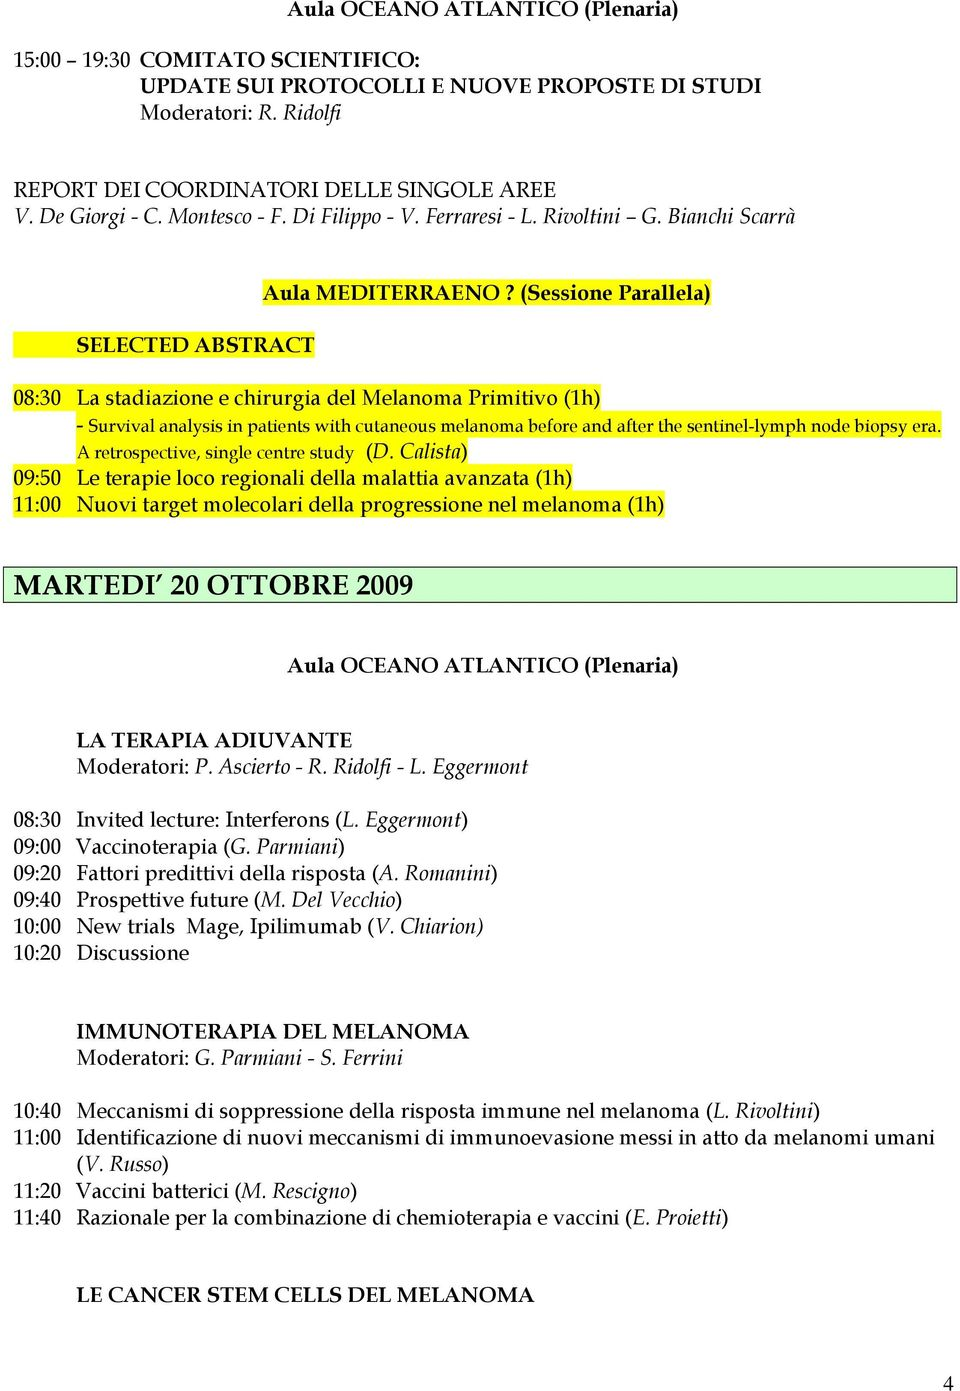 (Sessione Parallela) 08:30 La stadiazione e chirurgia del Melanoma Primitivo (1h) - Survival analysis in patients with cutaneous melanoma before and after the sentinel-lymph node biopsy era.